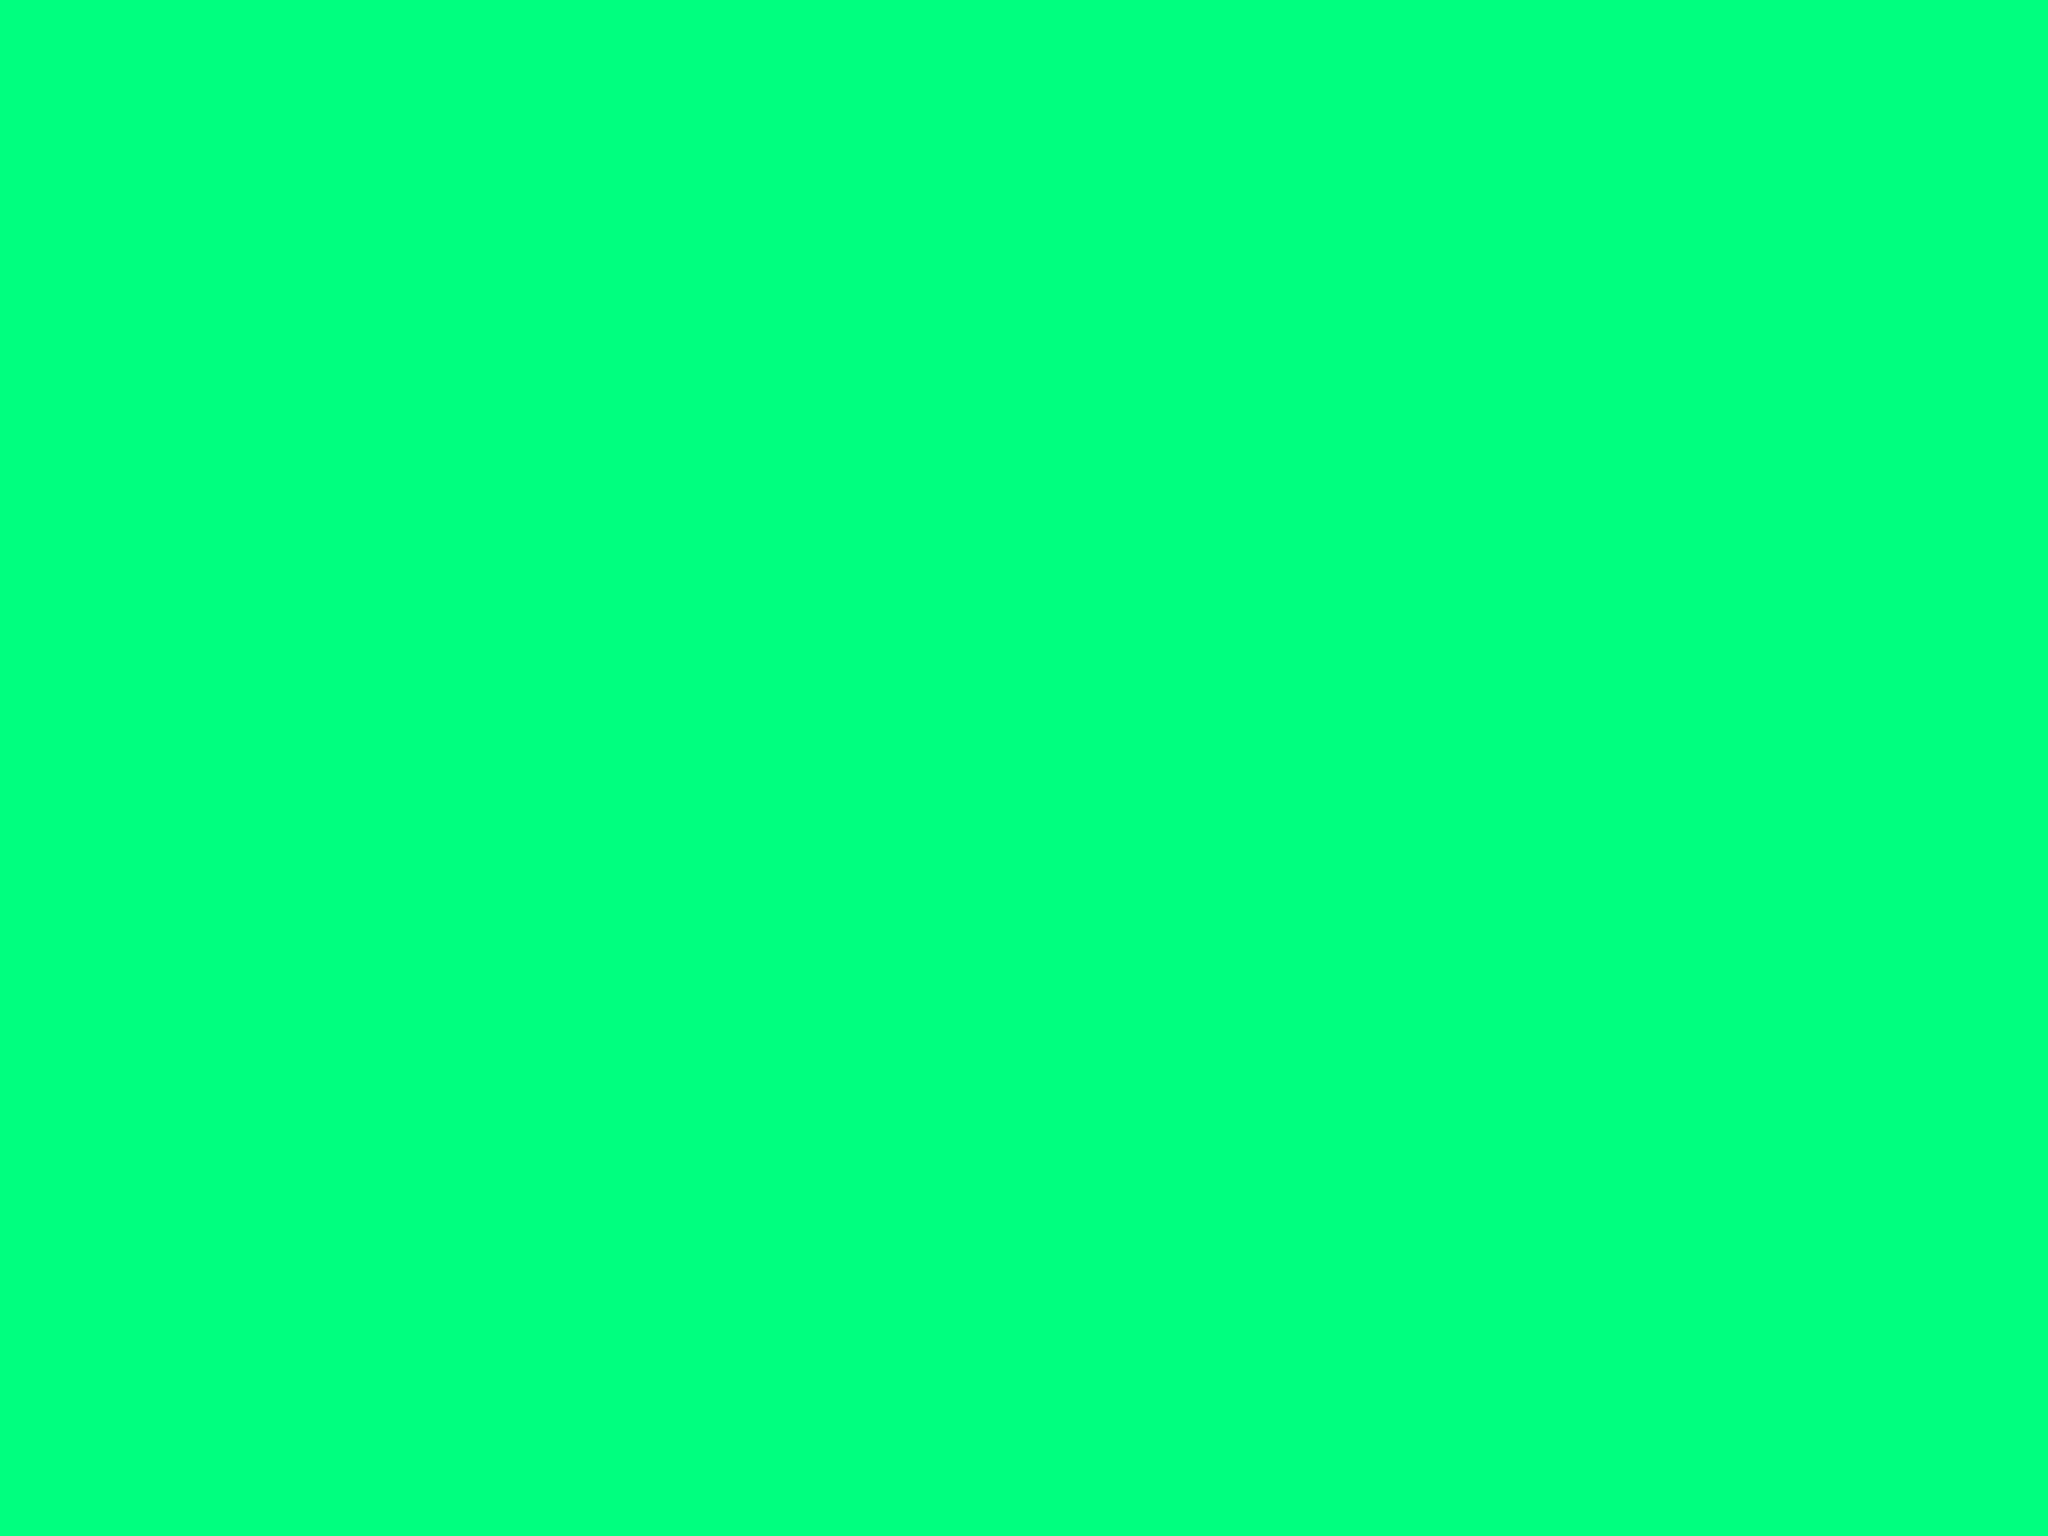 2048x1536 Guppie Green Solid Color Background